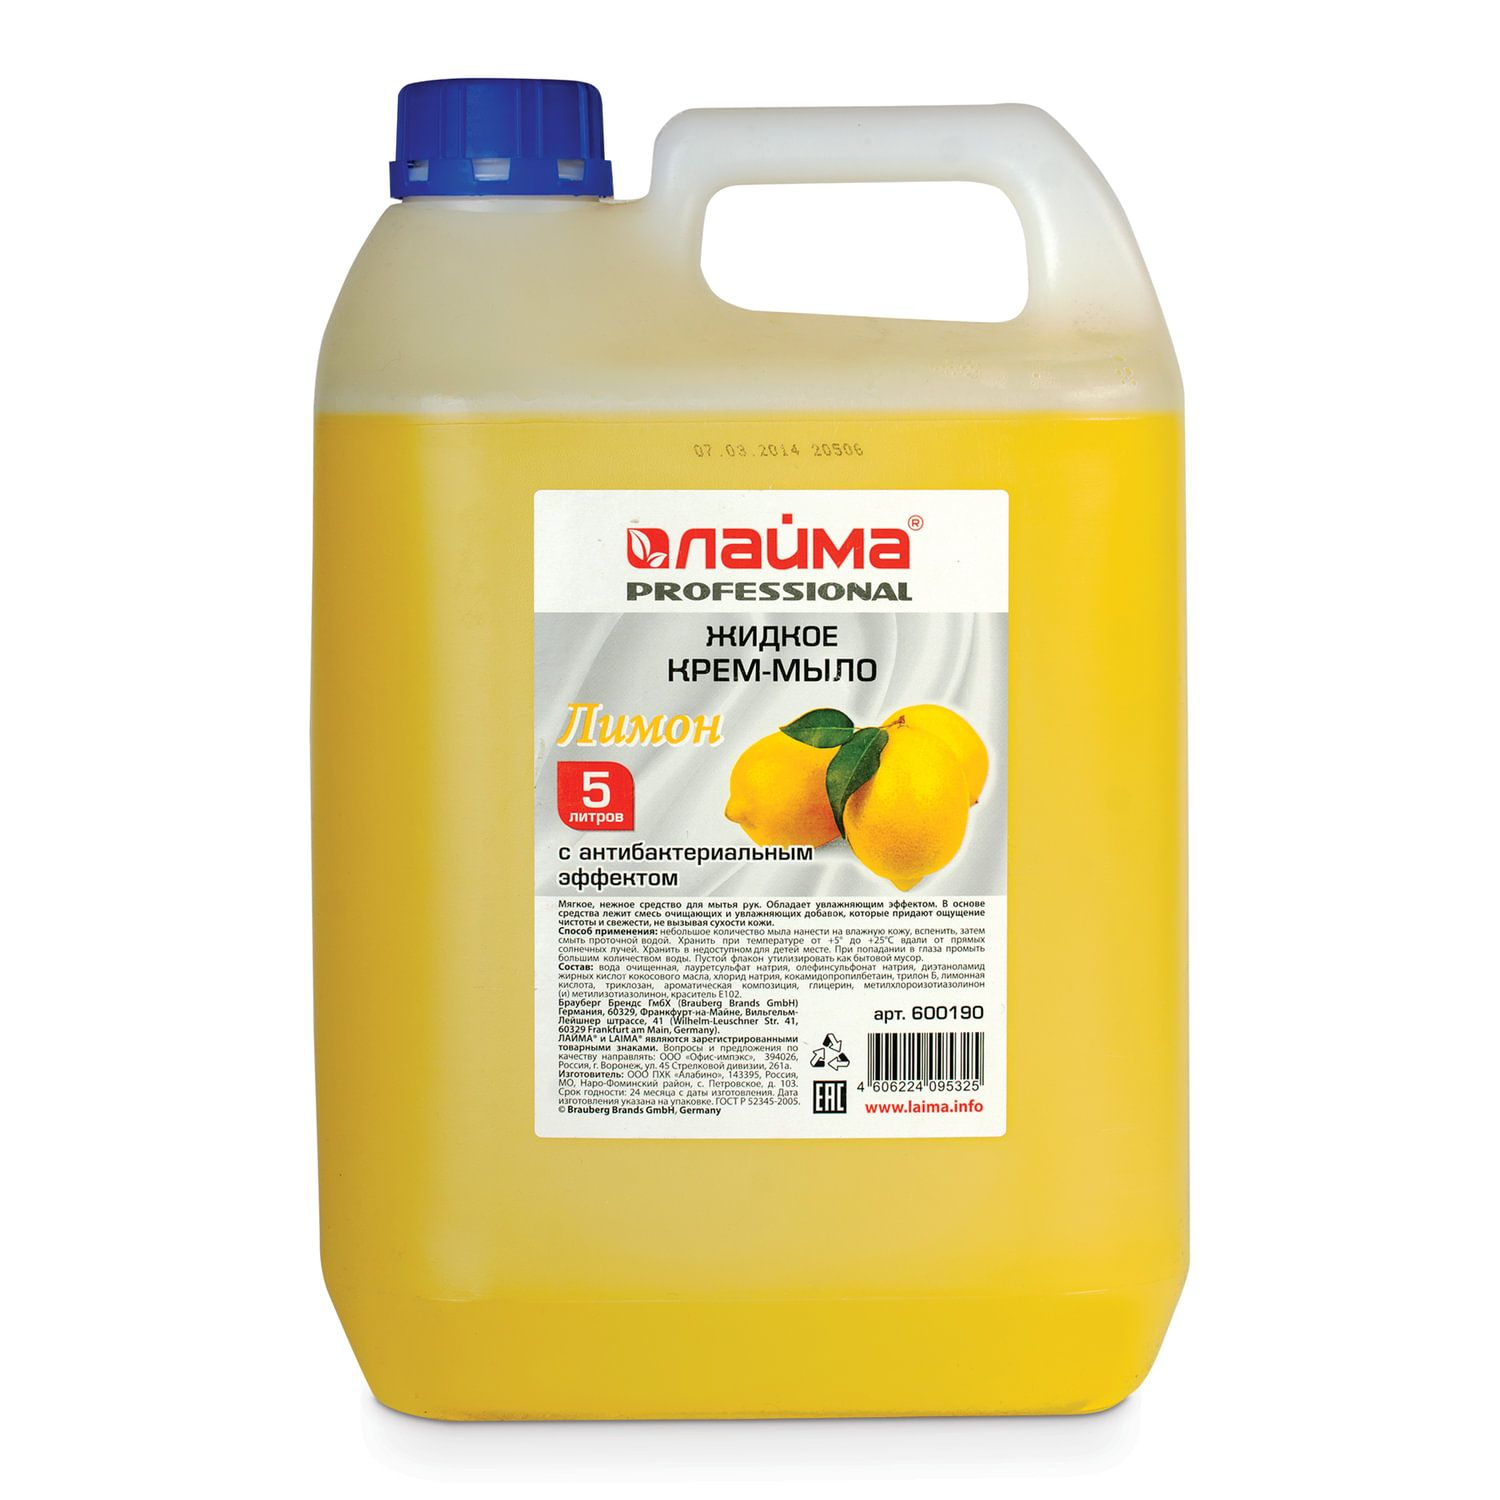 "Soap-cream fluid 5 litres, PROFESSIONAL LIME ""Lemon"", with an antibacterial effect"